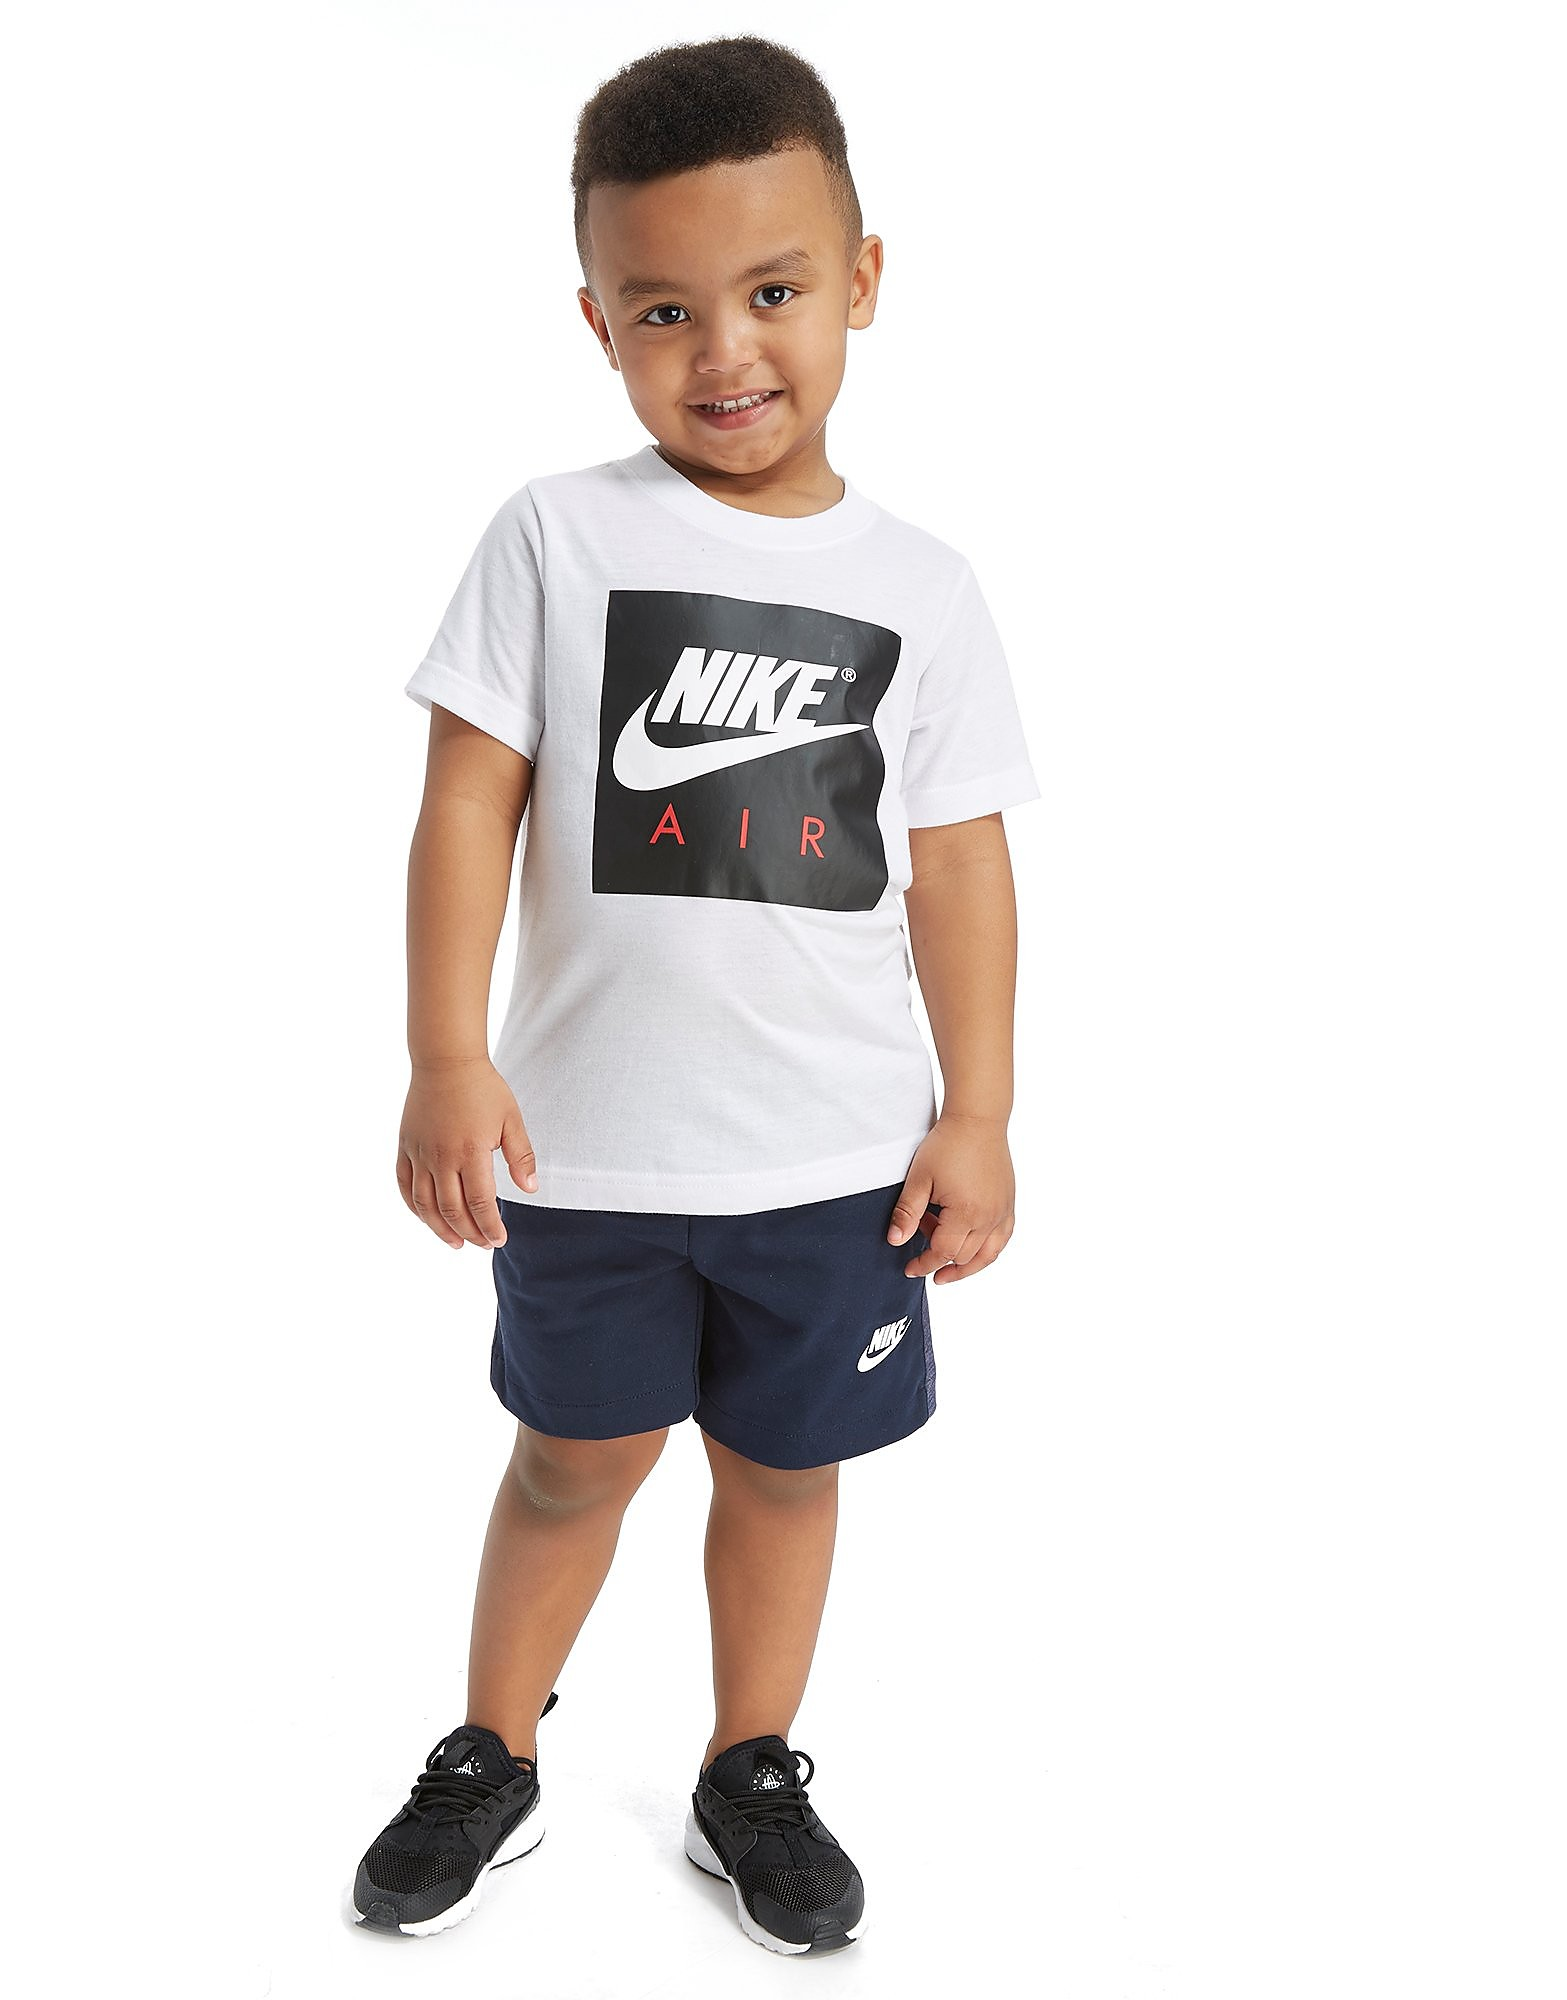 Nike Air Box T-Shirt Children